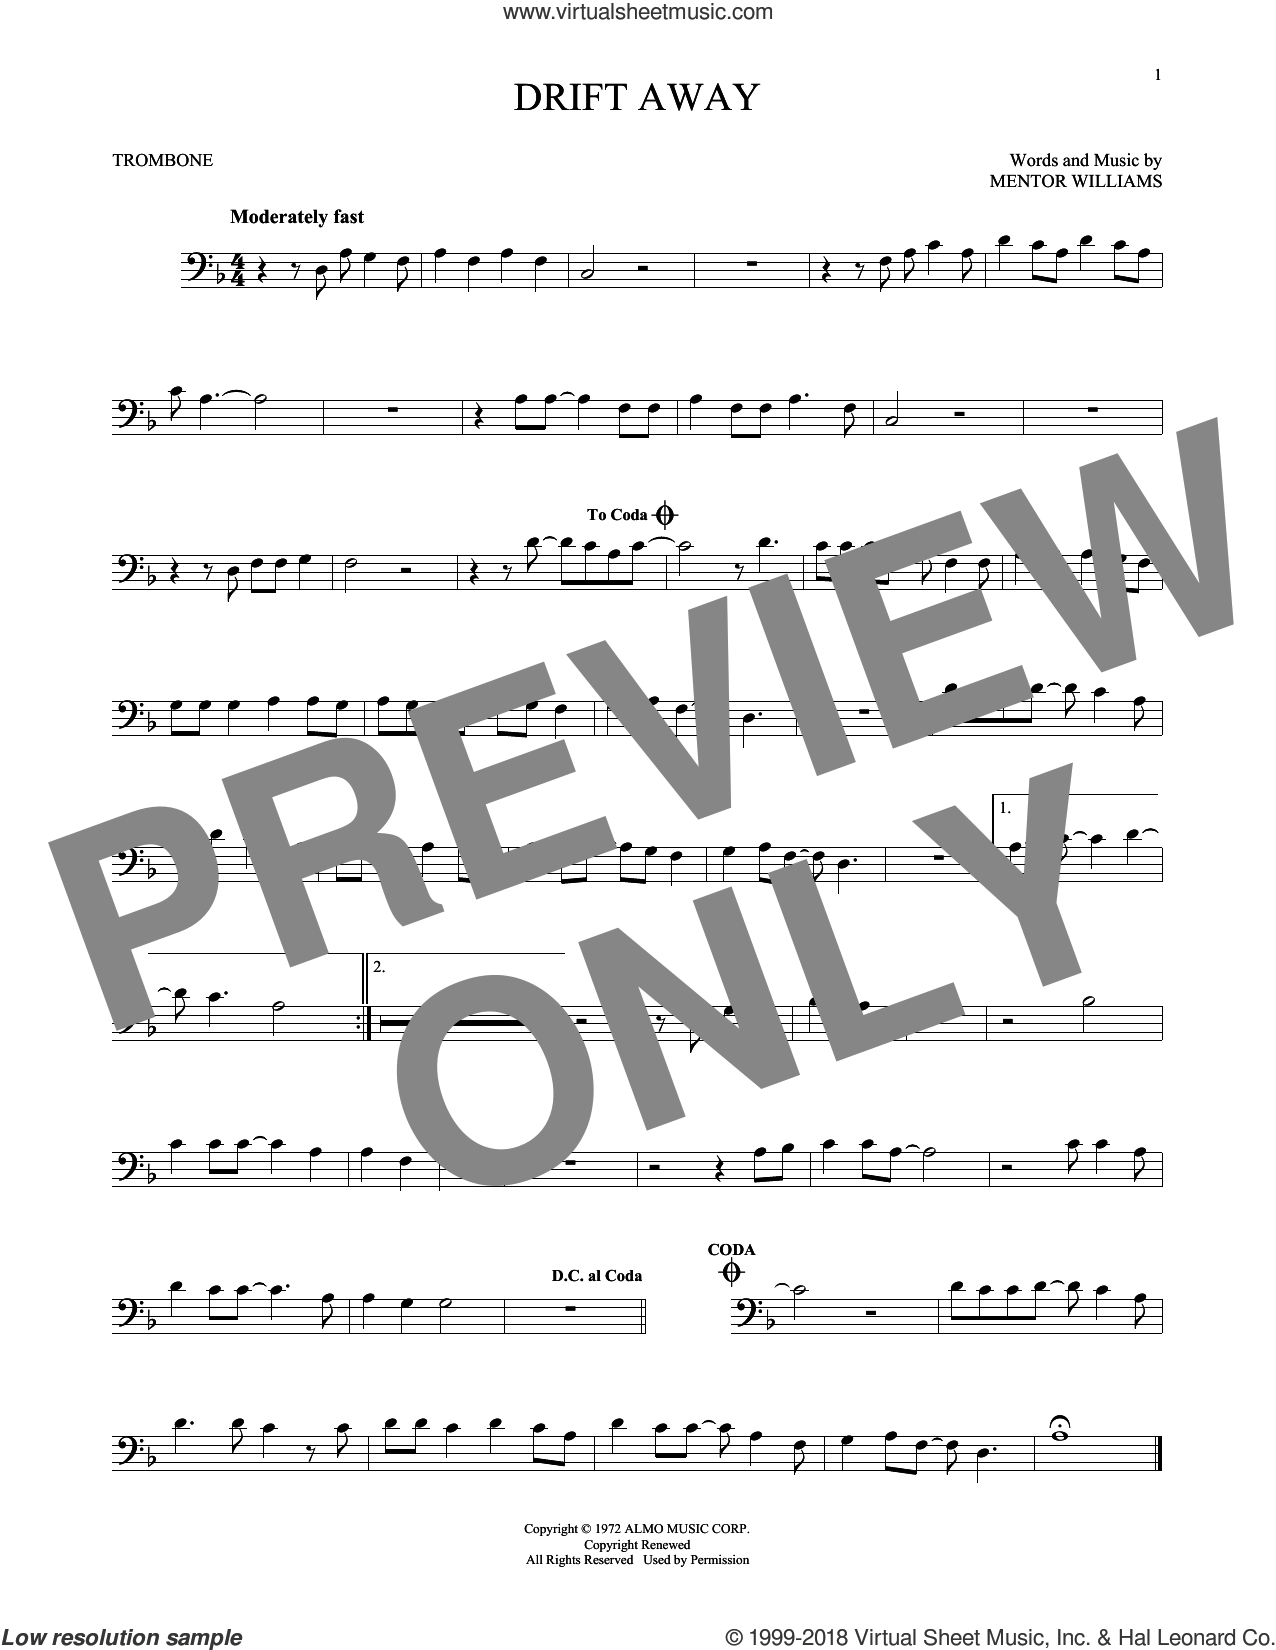 Drift Away sheet music for trombone solo by Dobie Gray and Mentor Williams, intermediate skill level